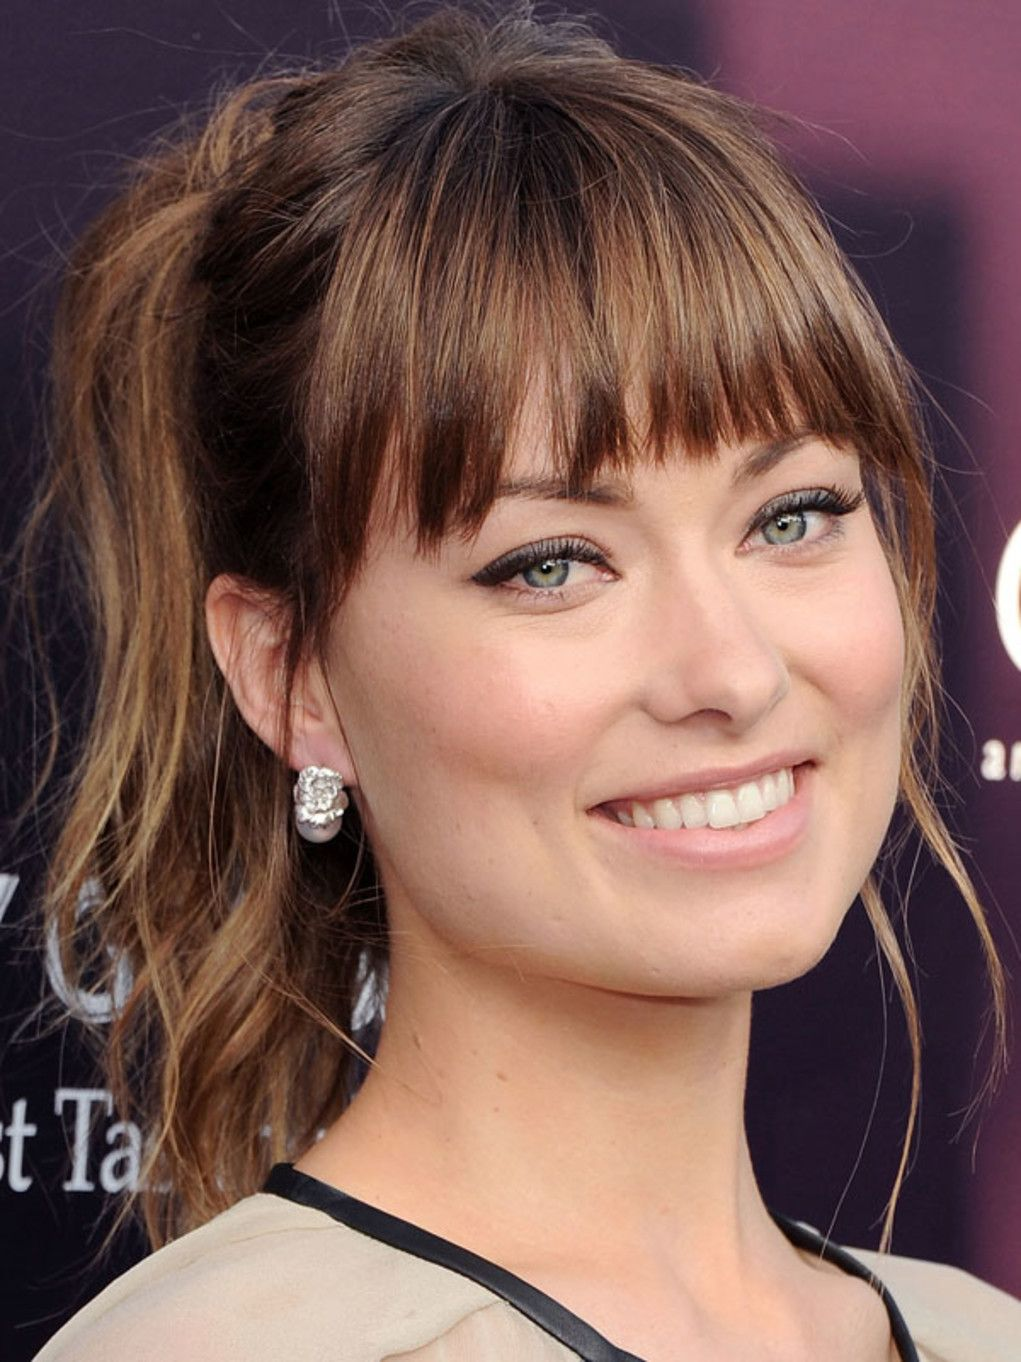 The Best and Worst Bangs for Square Face Shapes Beautyeditor